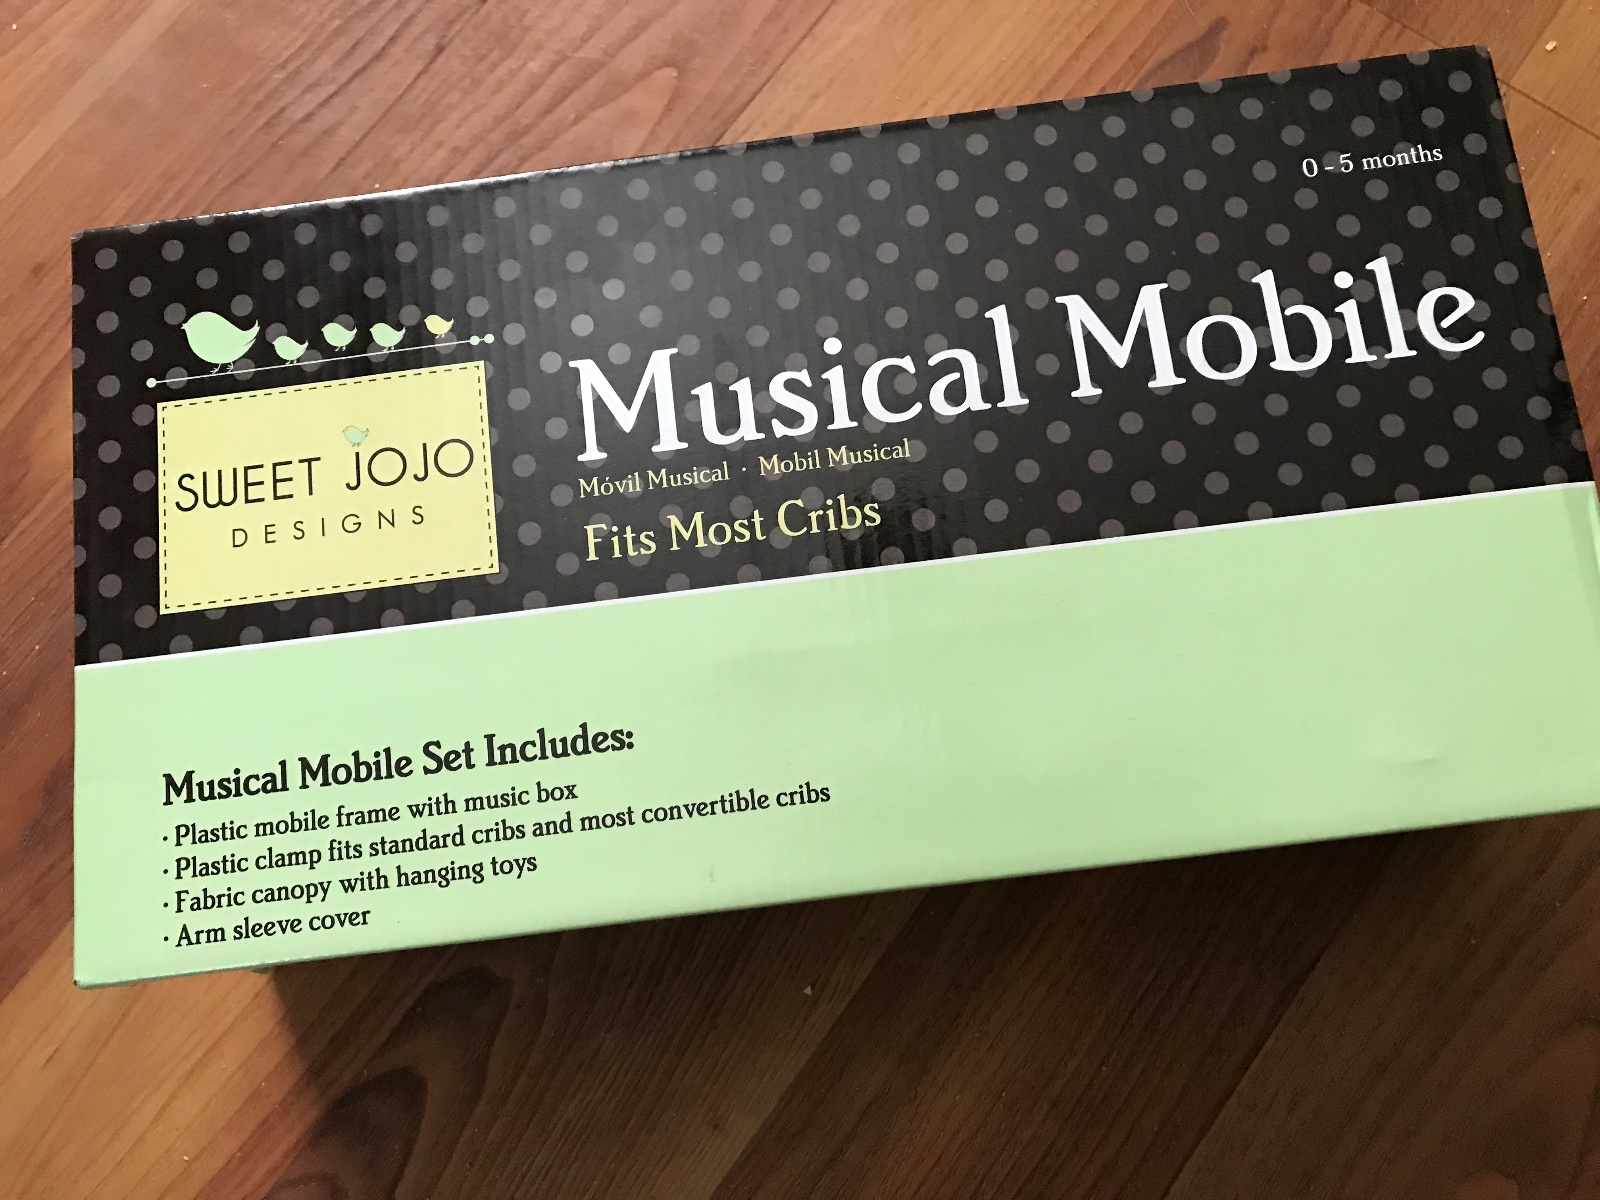 Sweet JOJO Designs Musical Mobile Fits Most Baby Cribs For 0 To 5 Months - $10.99